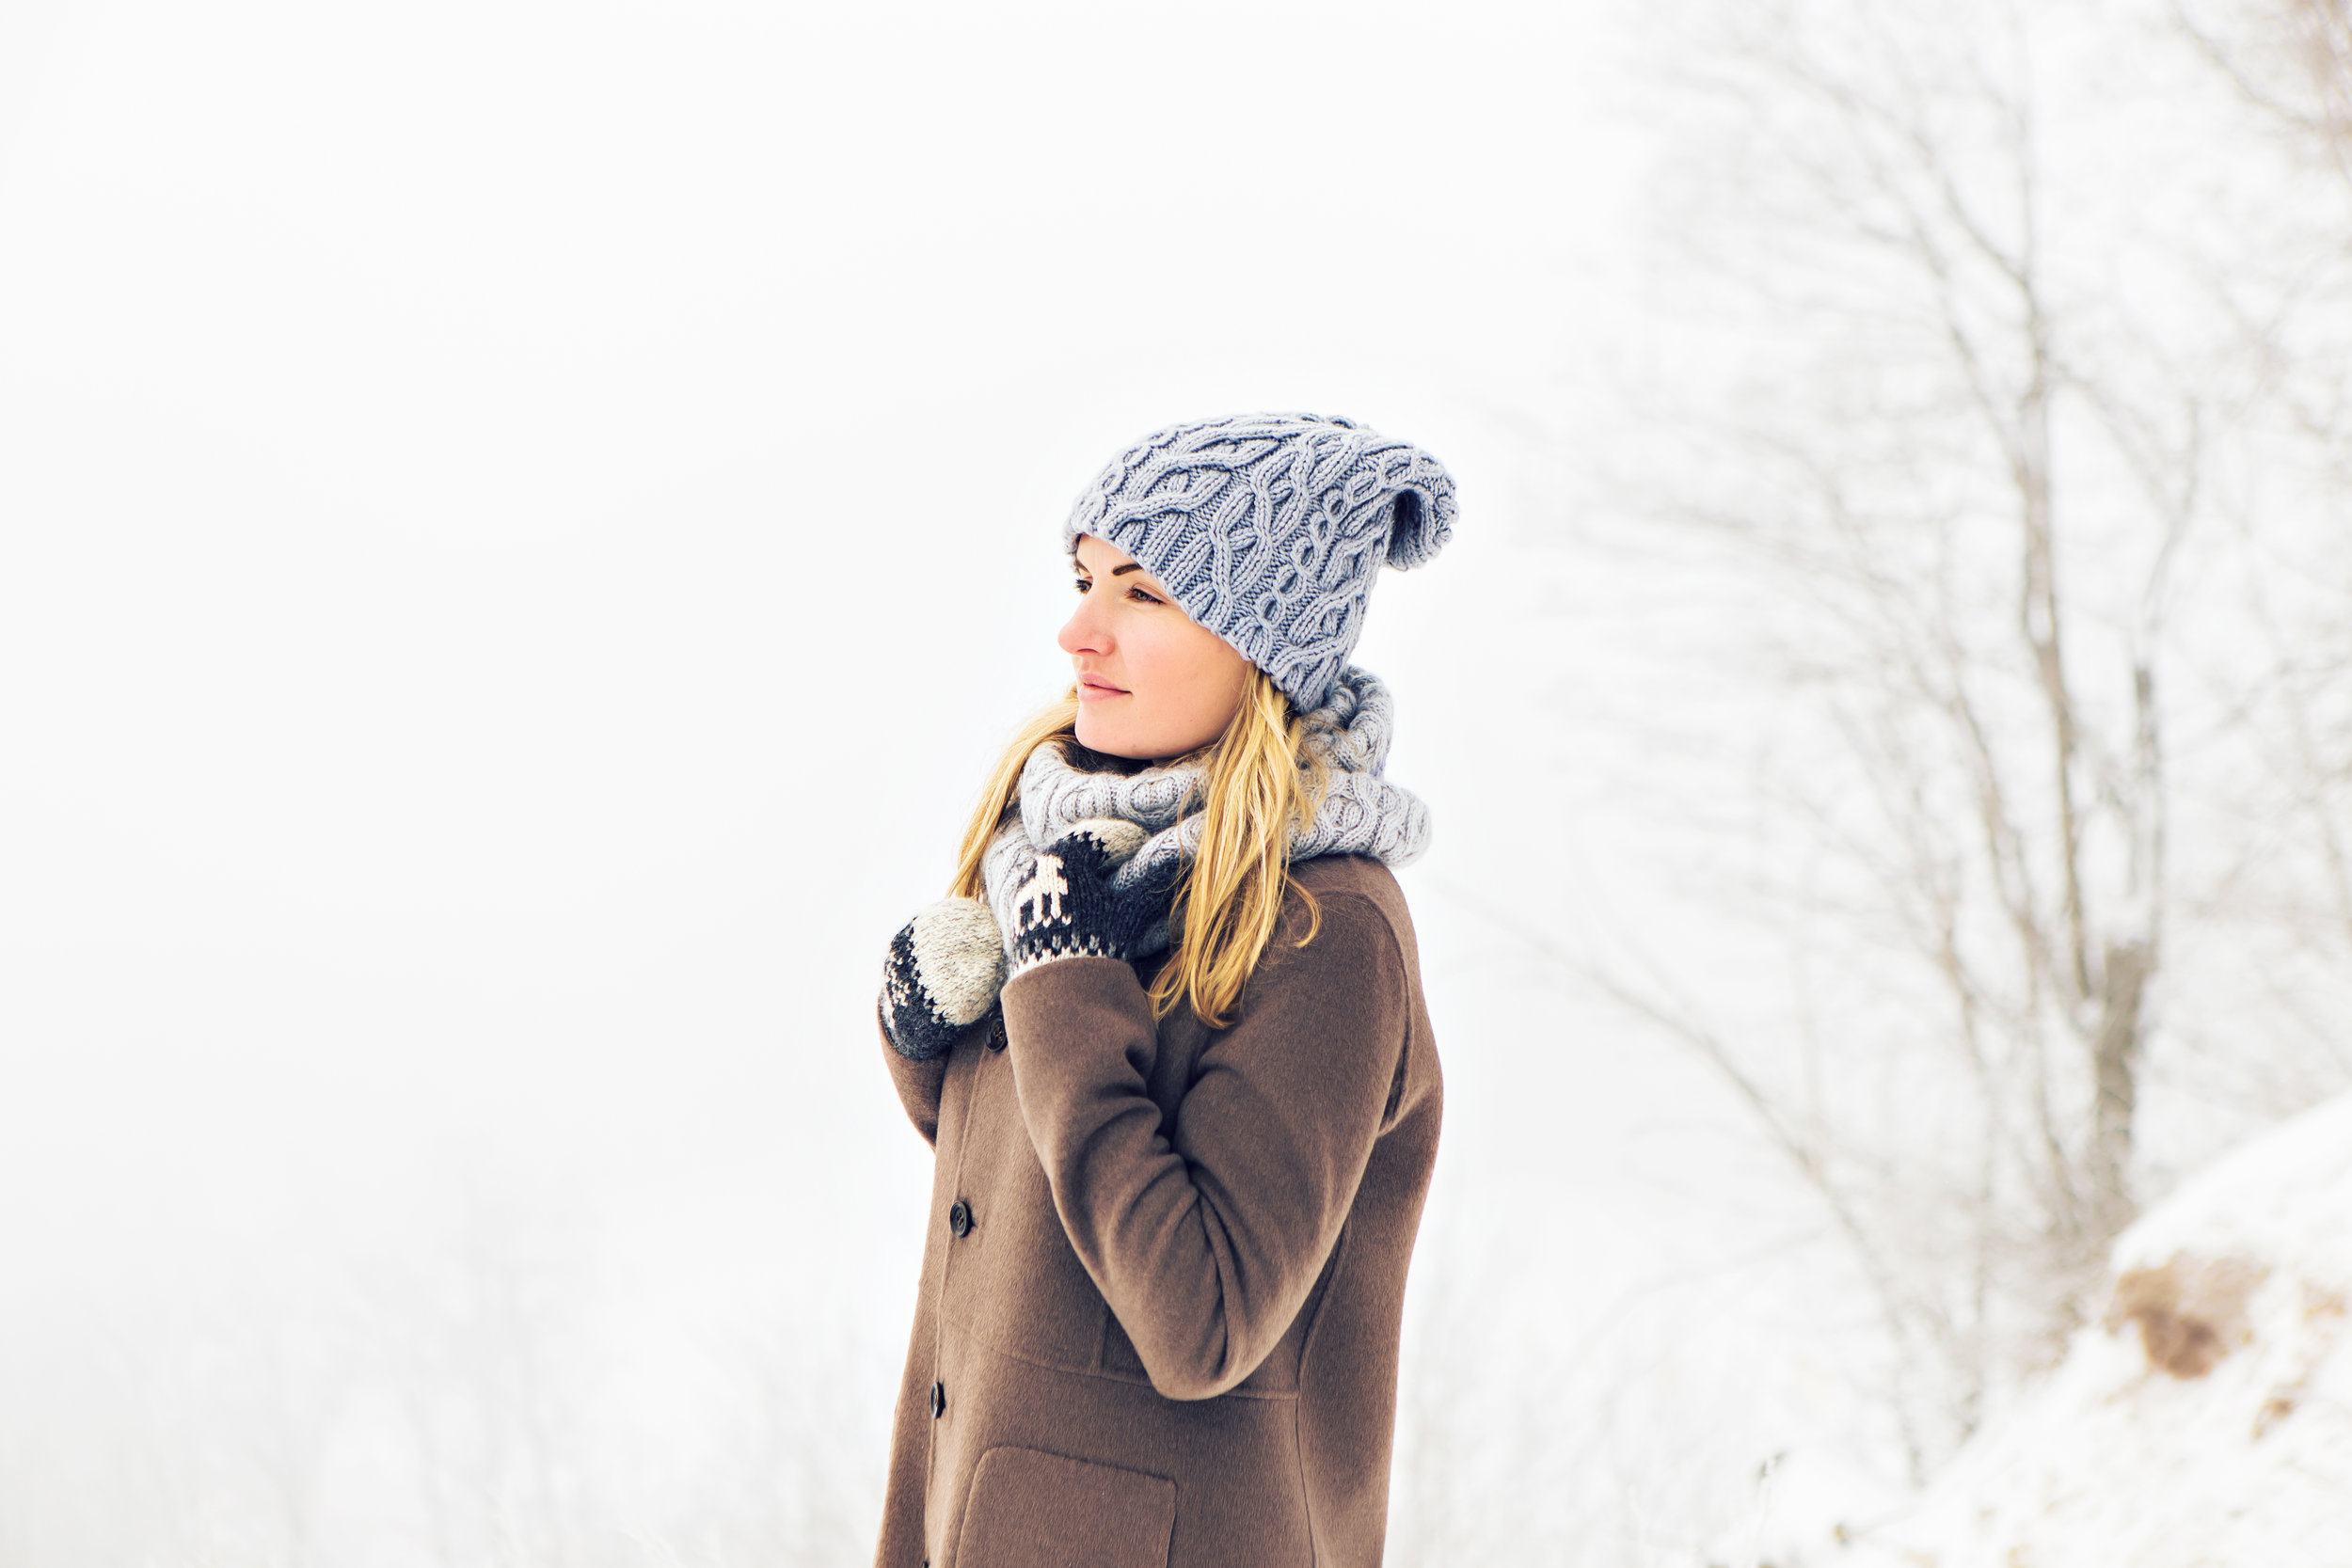 attractive-young-woman-in-wintertime-outdoor-snow-PL49CSV.jpg